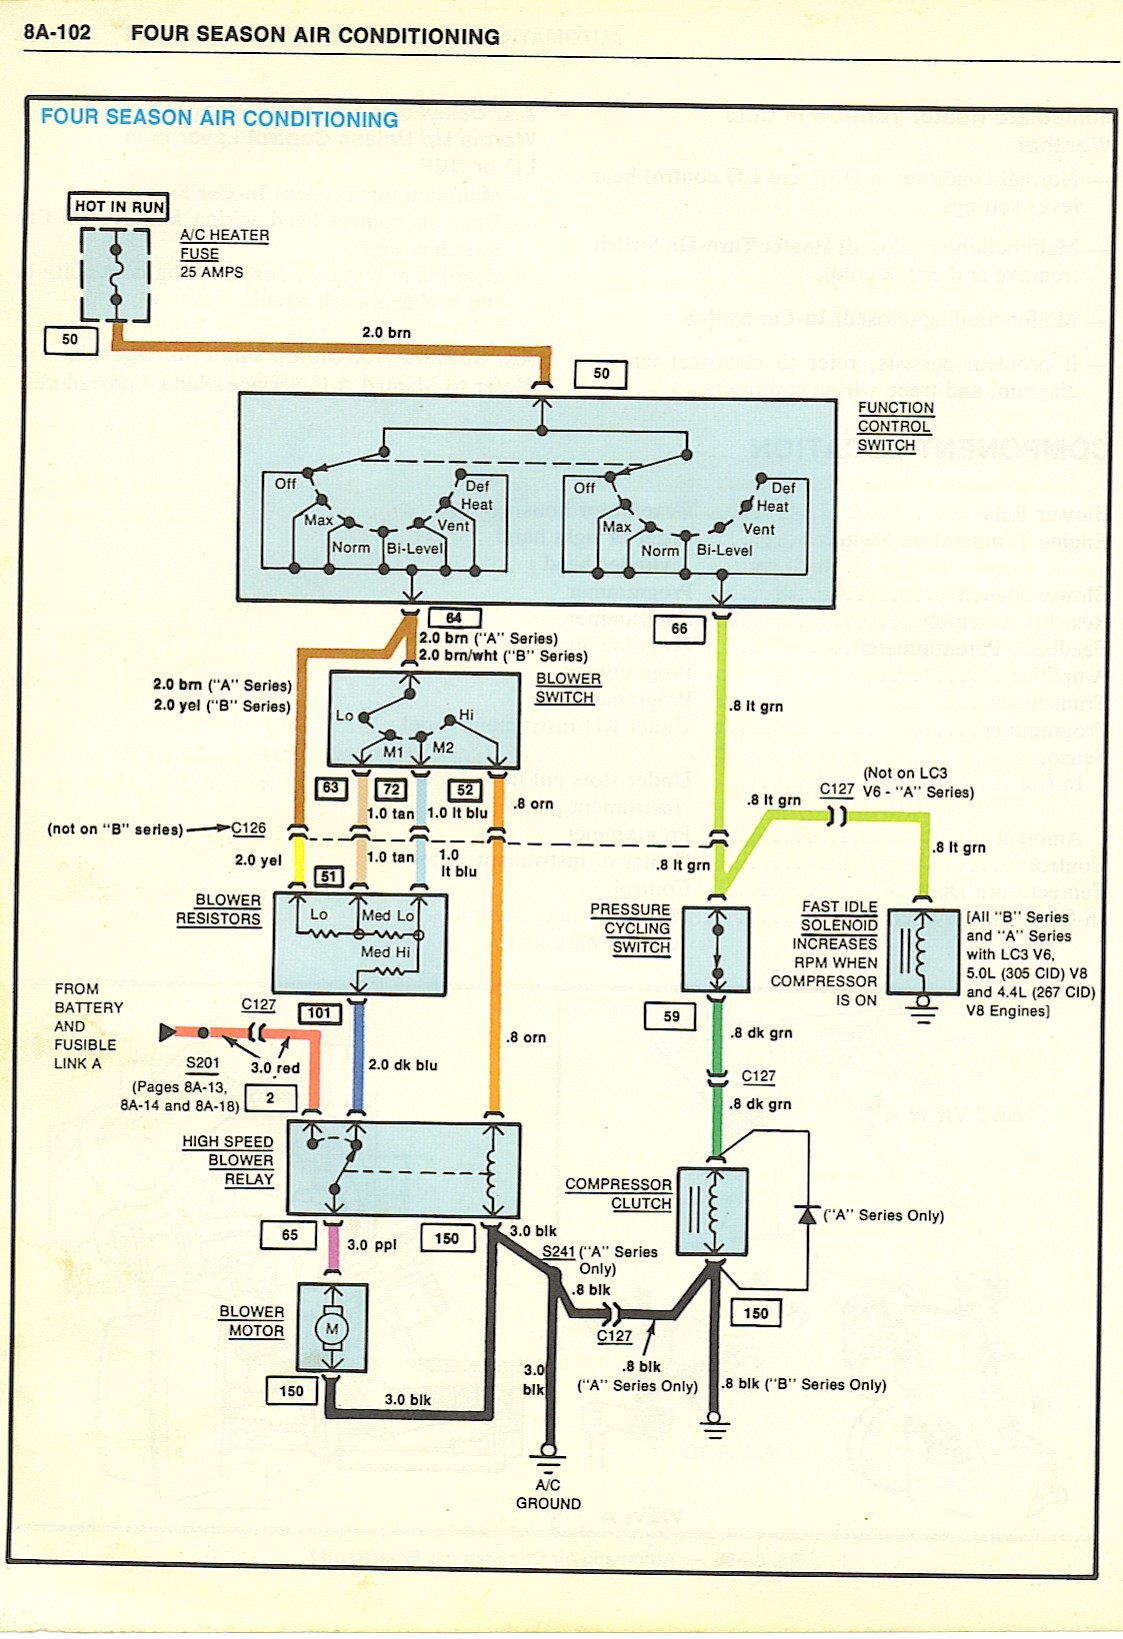 Ac Drawing At Free For Personal Use Of Ptc Condensing Unit Wiring Diagram 1123x1639 1969 C10